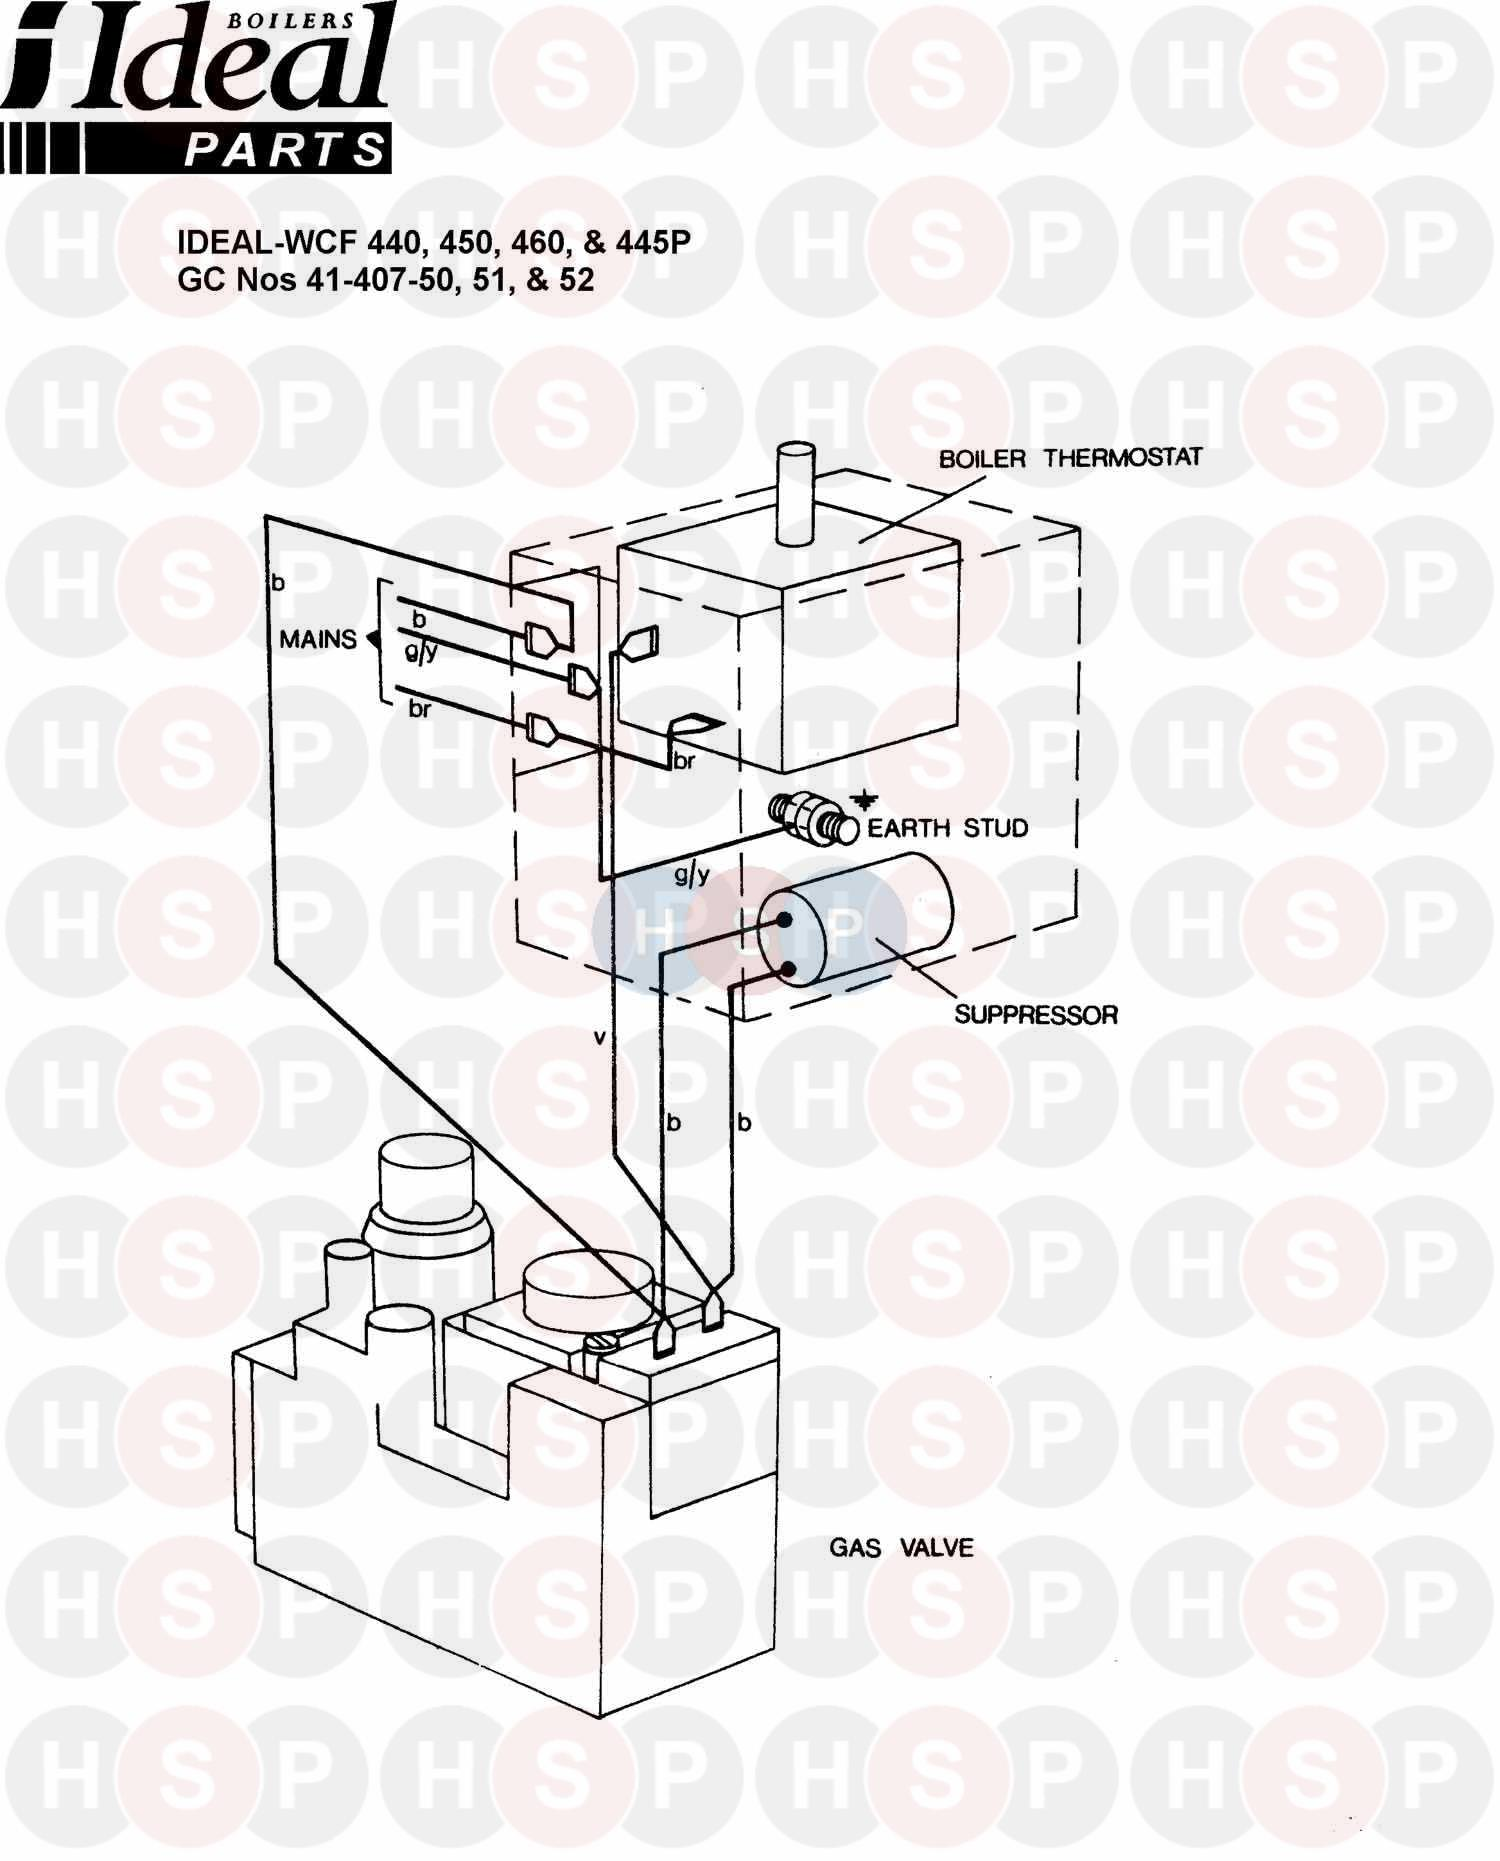 Ideal Concord Wcf 440 Wiring Diagram 1 Heating Spare Parts Fan Switch Click The To Open It On A New Page